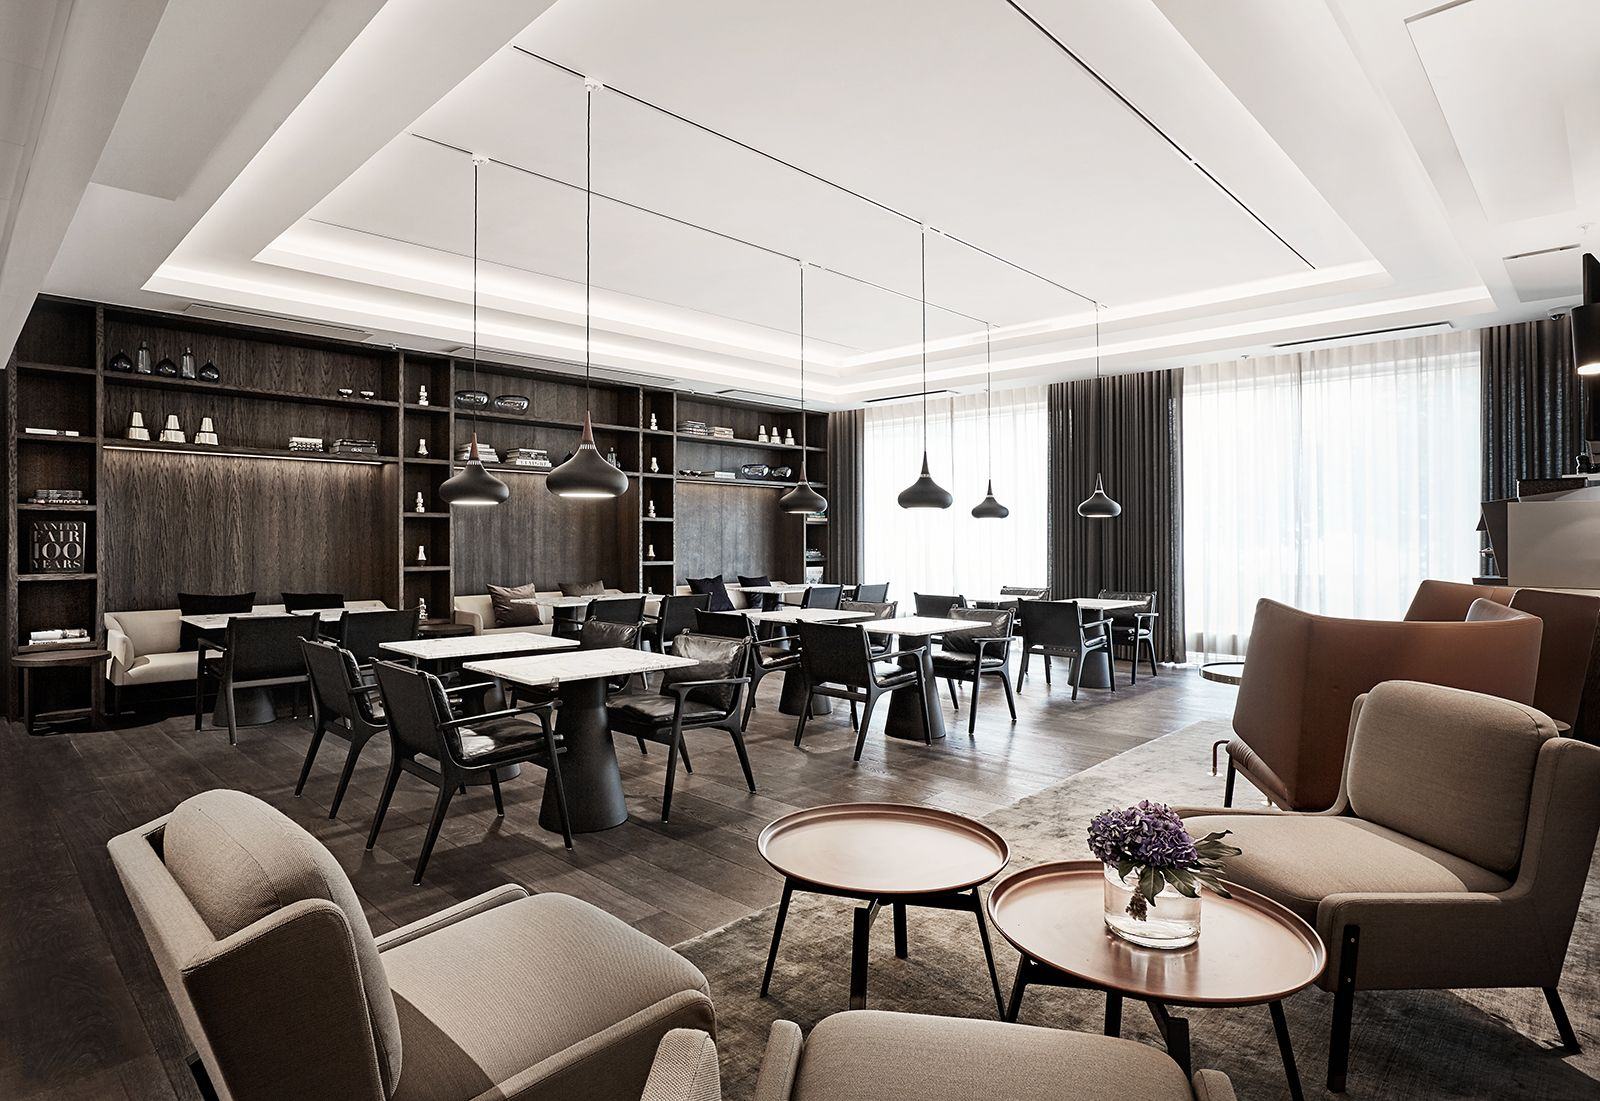 Marriott Copenhagen Executive Lounge Interior Design